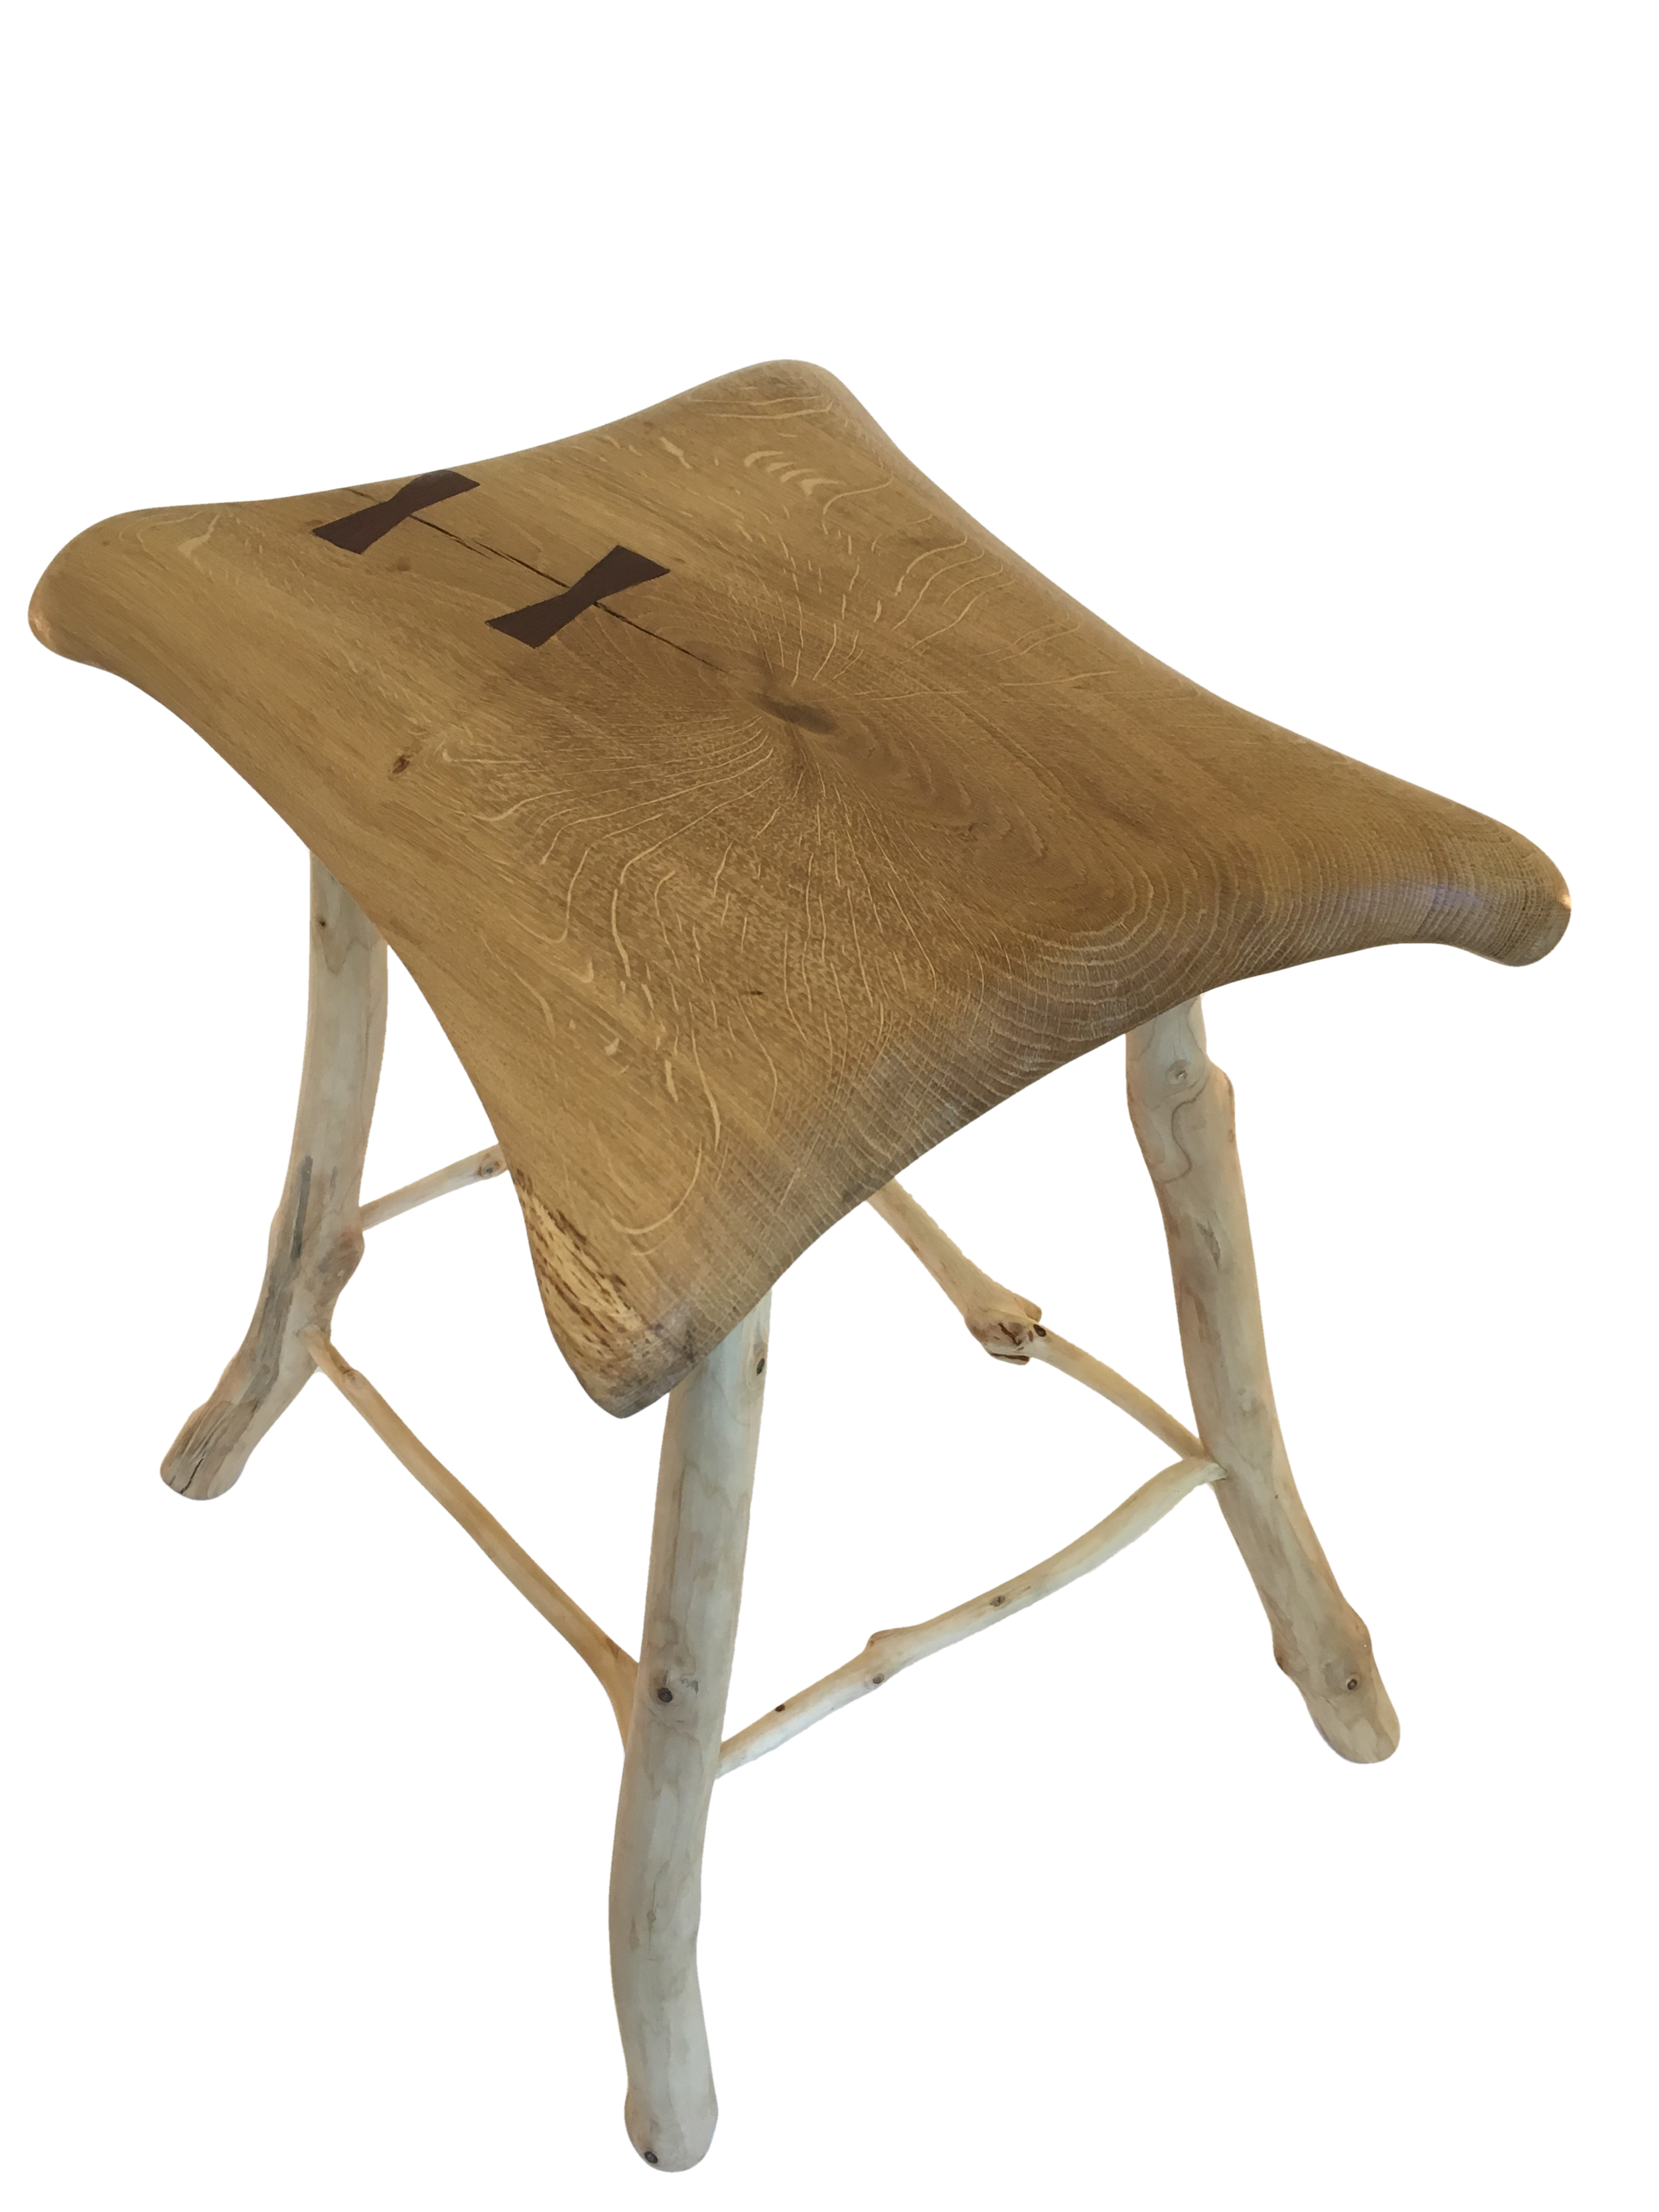 Stool 2 Side - Cropped No Shadow.png